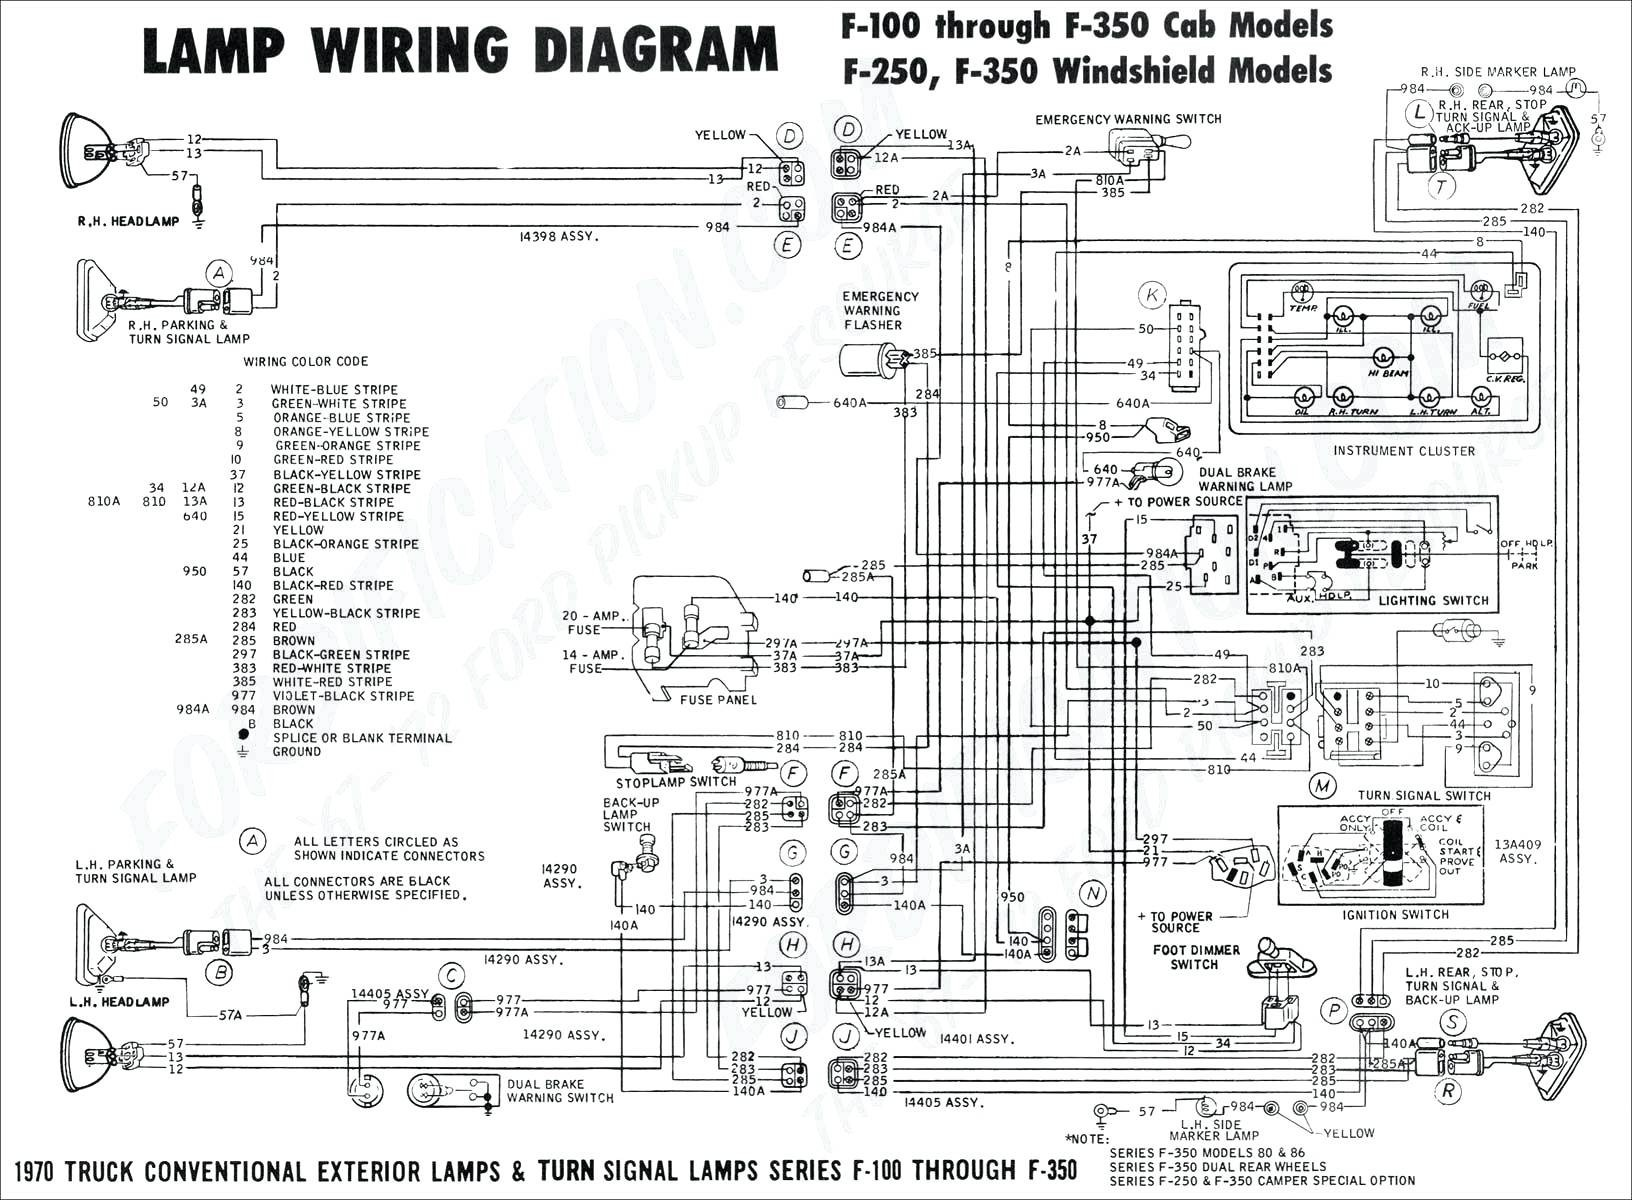 Ford F150 Wiring Harness Diagram Wiring Diagram ford F150 Trailer Lights Truck Best ford Engine Of Ford F150 Wiring Harness Diagram